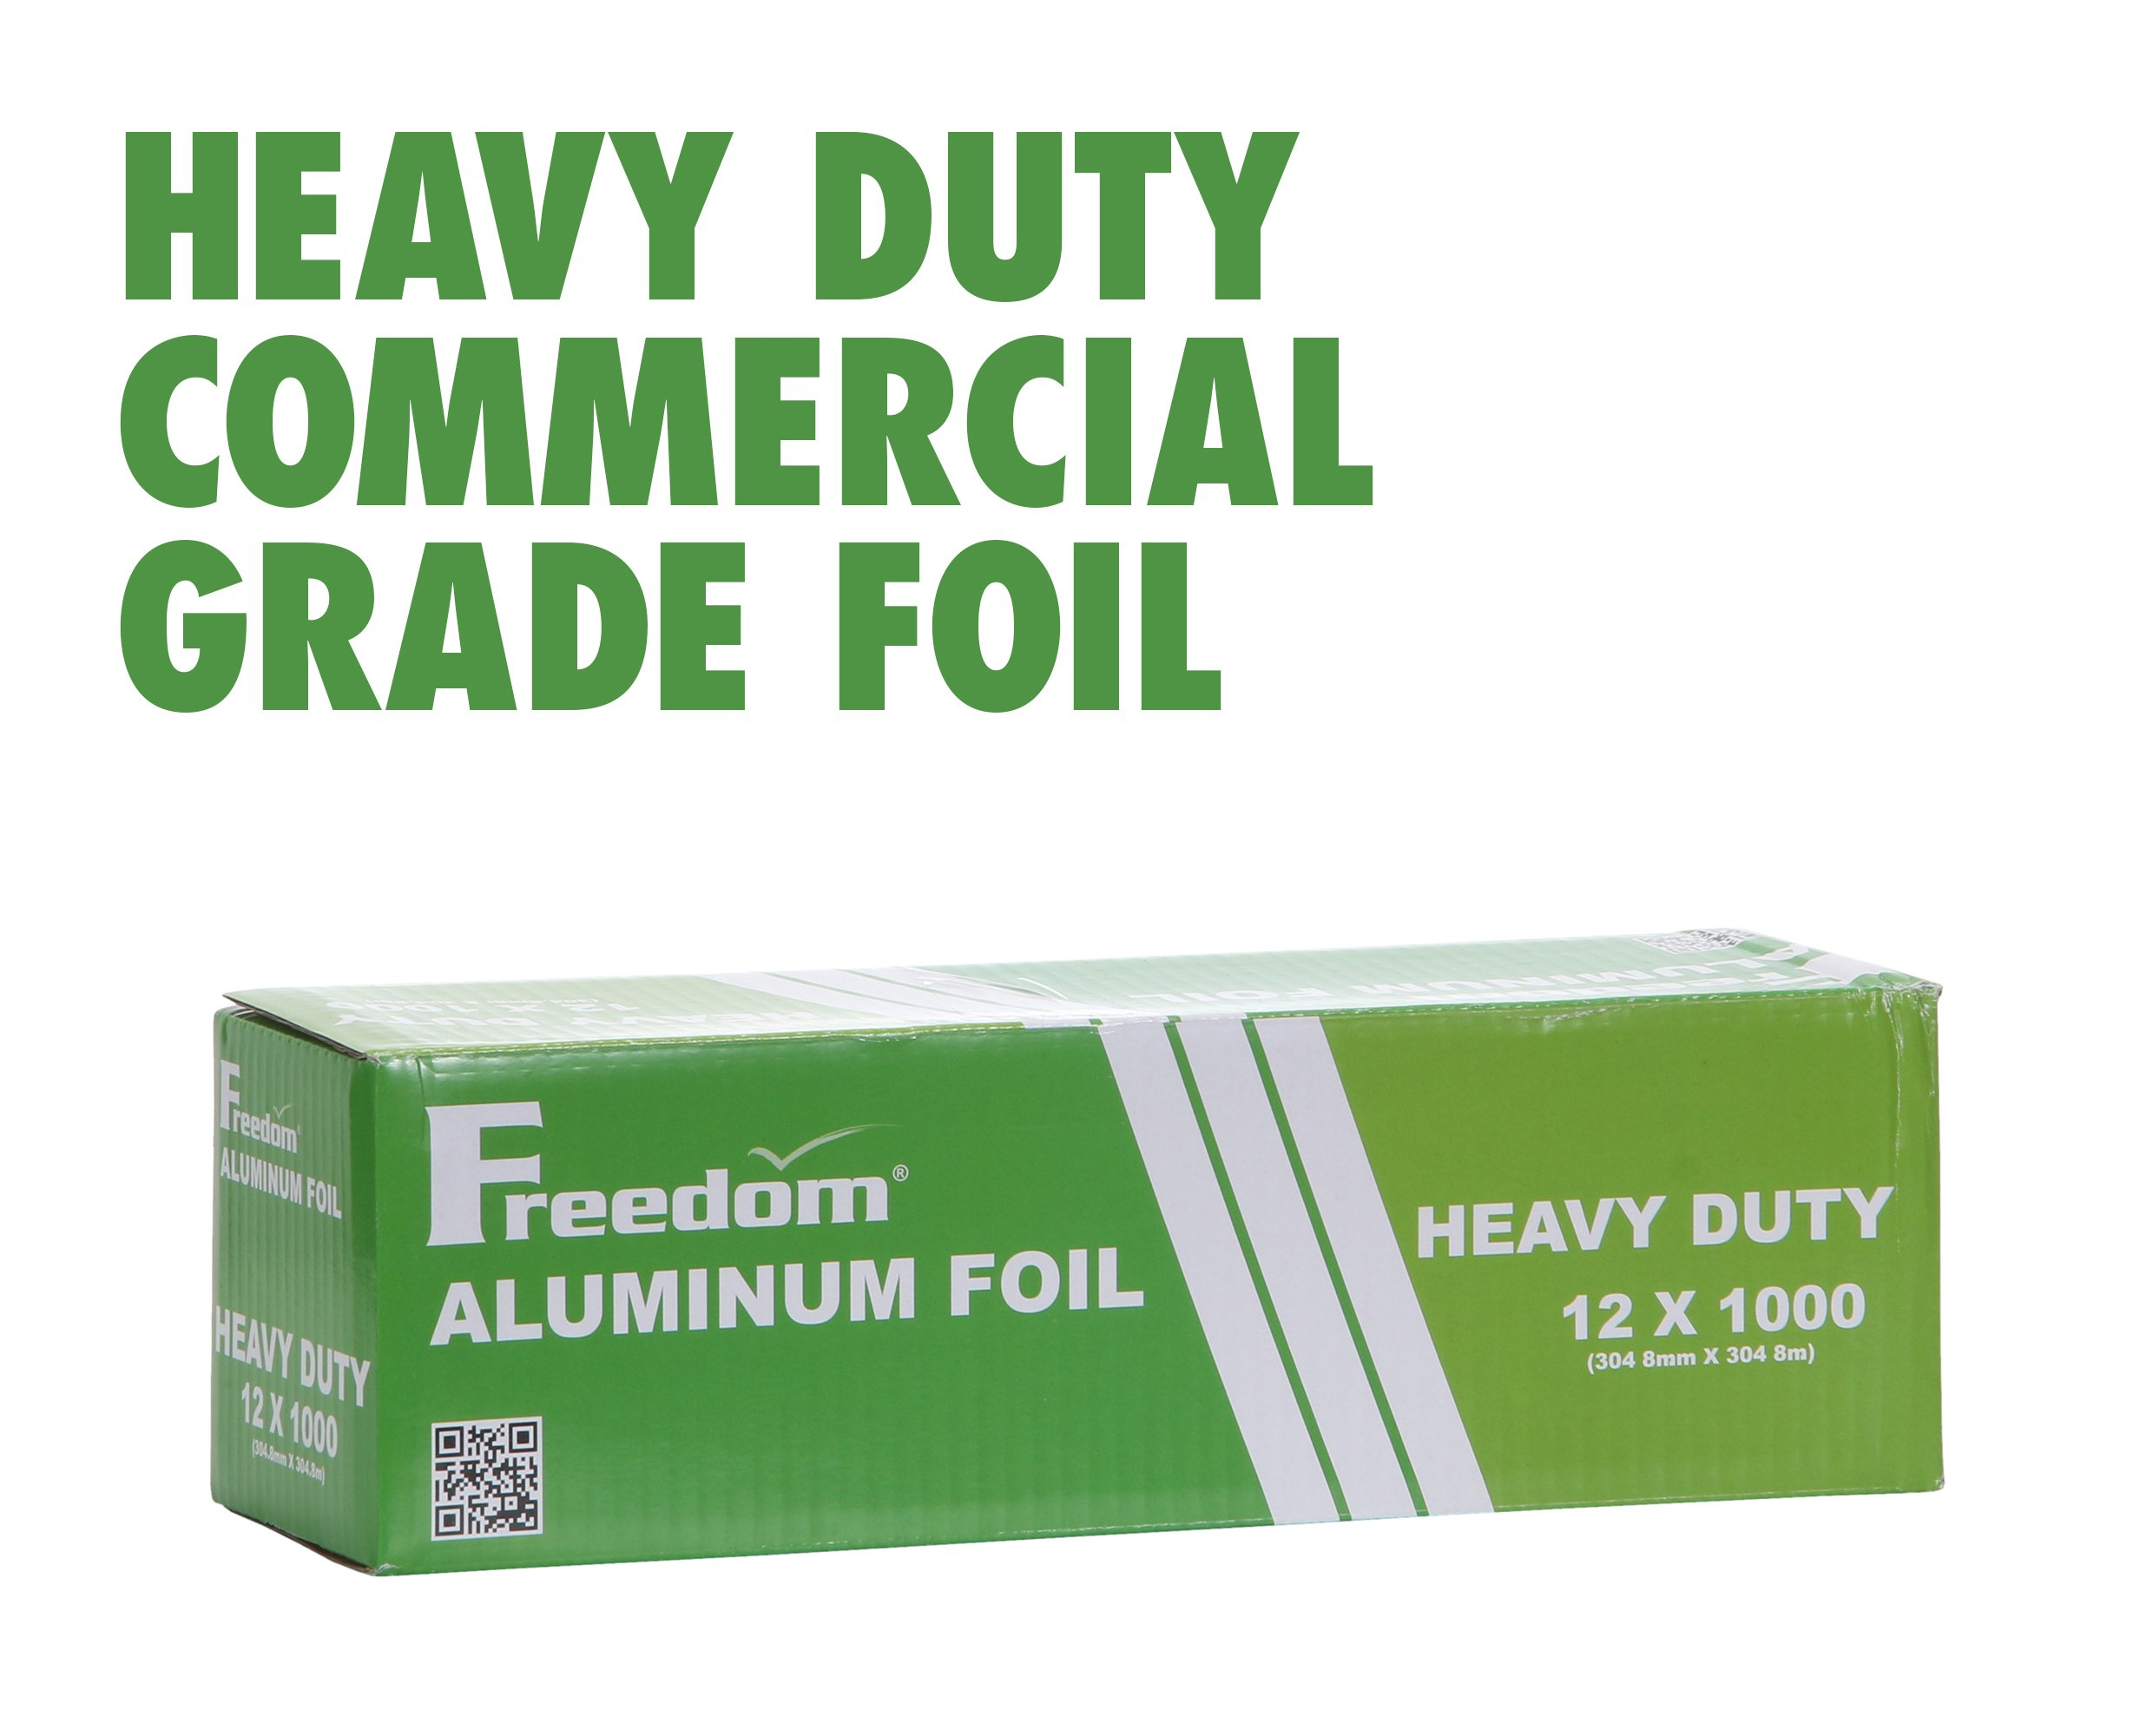 Heavy Duty Aluminum Foil Wrap, Commercial Grade 1000ft Foil Wrap for Food Service Industry, Strong Silver foil, 12 inches by 1000 Feet (1-Box)